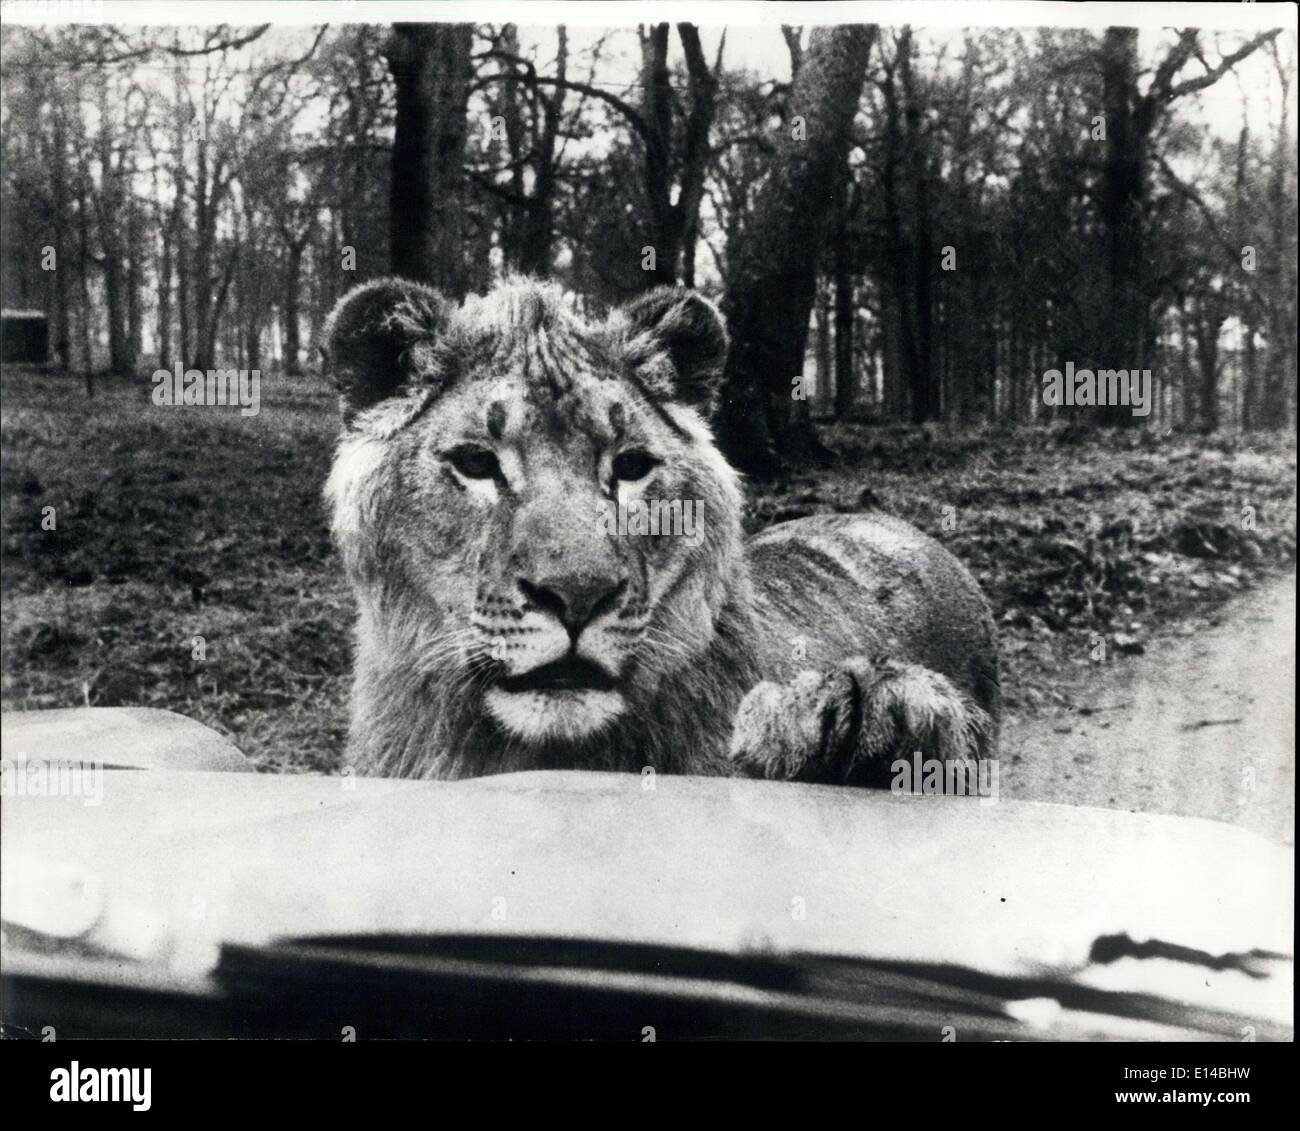 Apr. 17, 2012 - Motorists nightmare: What motorists wouldn't stand against at this frightening spectacle a suspicious lion peering through the windscreen. In this instance the nightmare is seen taking place at Lion Country Safari, a popular new animal reserve at Palm beach, Florida. Motorists driving through the reserve are warned to keep the car windows up and with good reason. - Stock Image